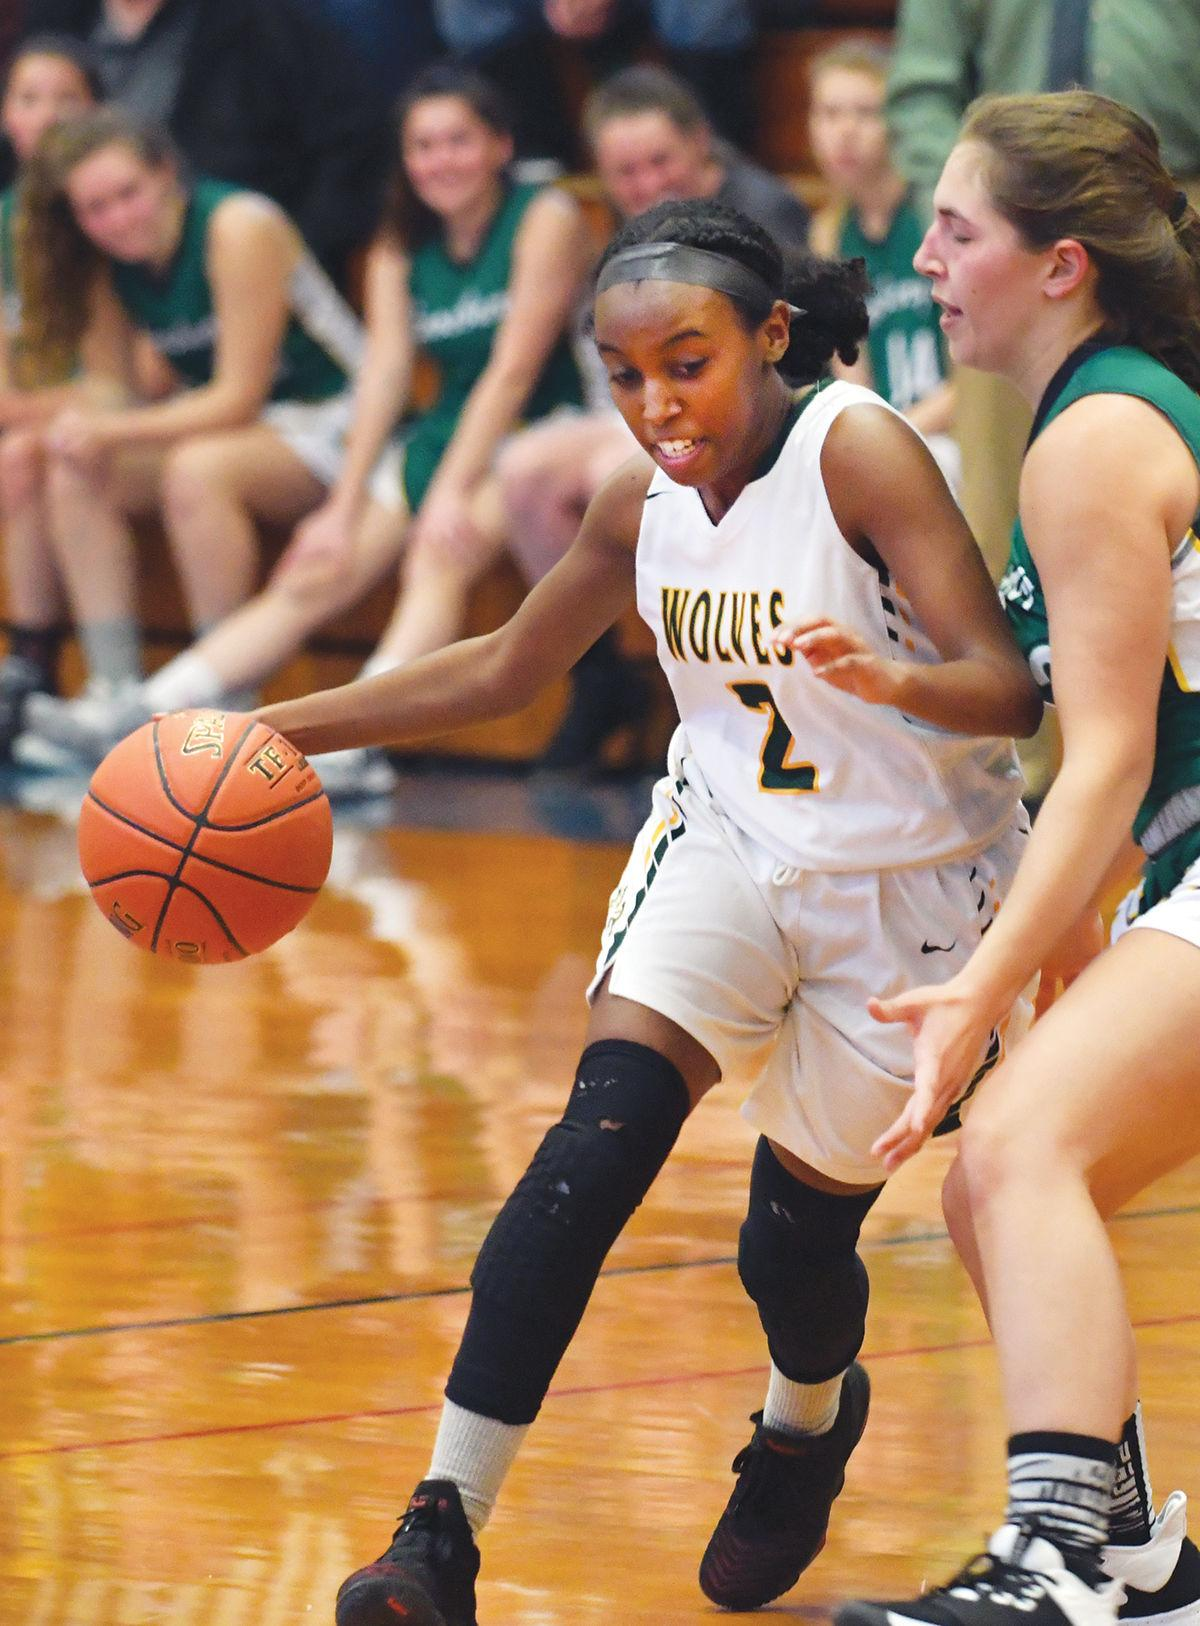 PA girls basketball season preview: Melania Fogg